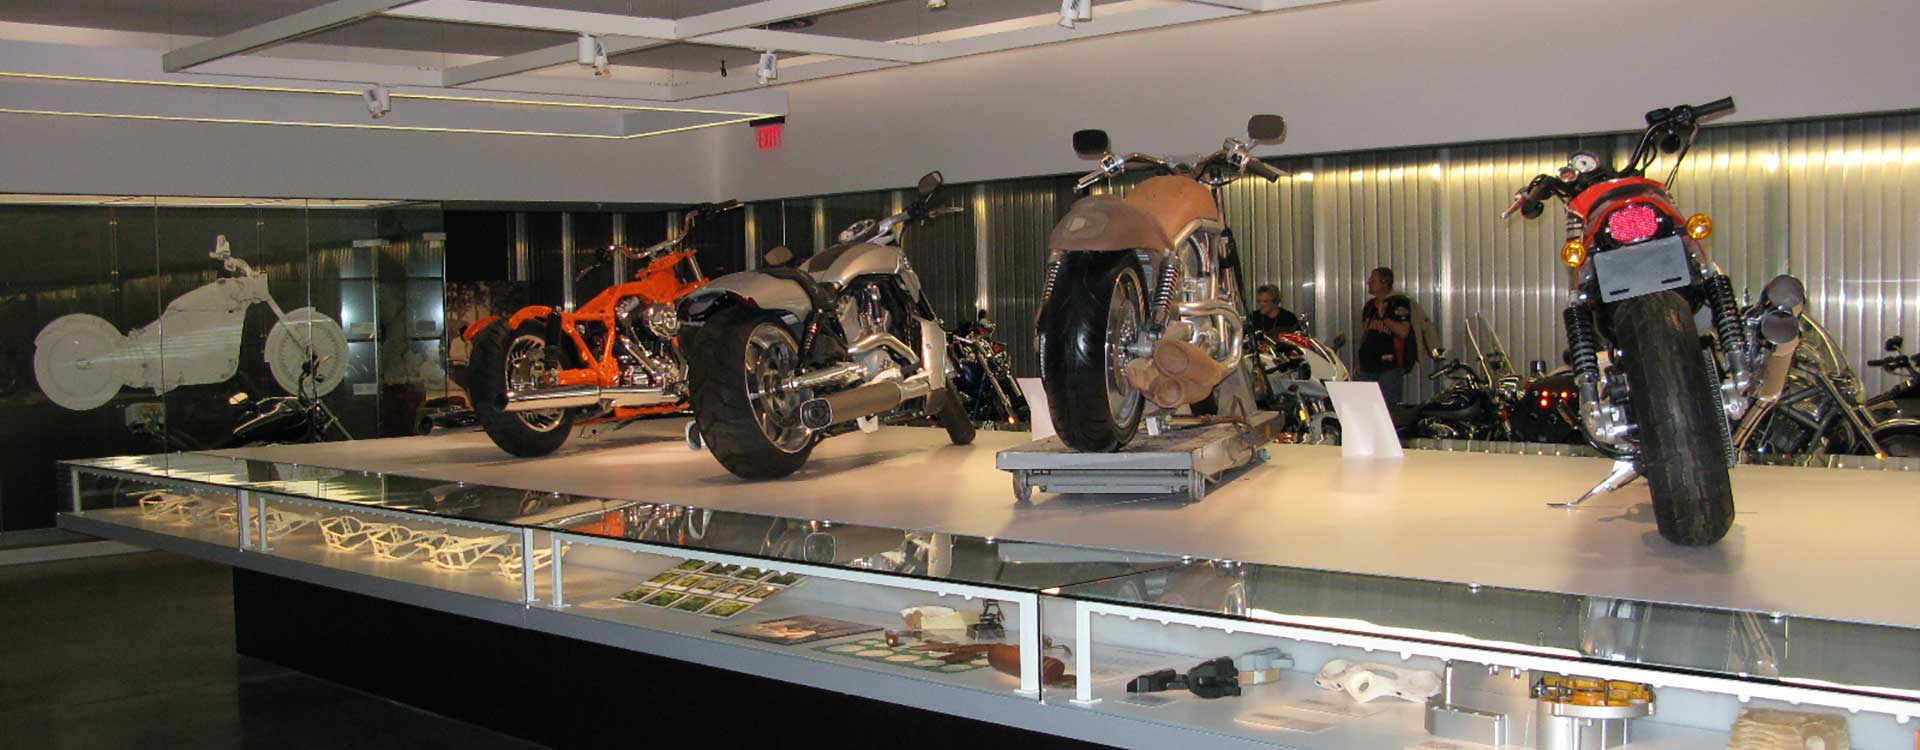 fibre optic lighting in the harley davidson museum